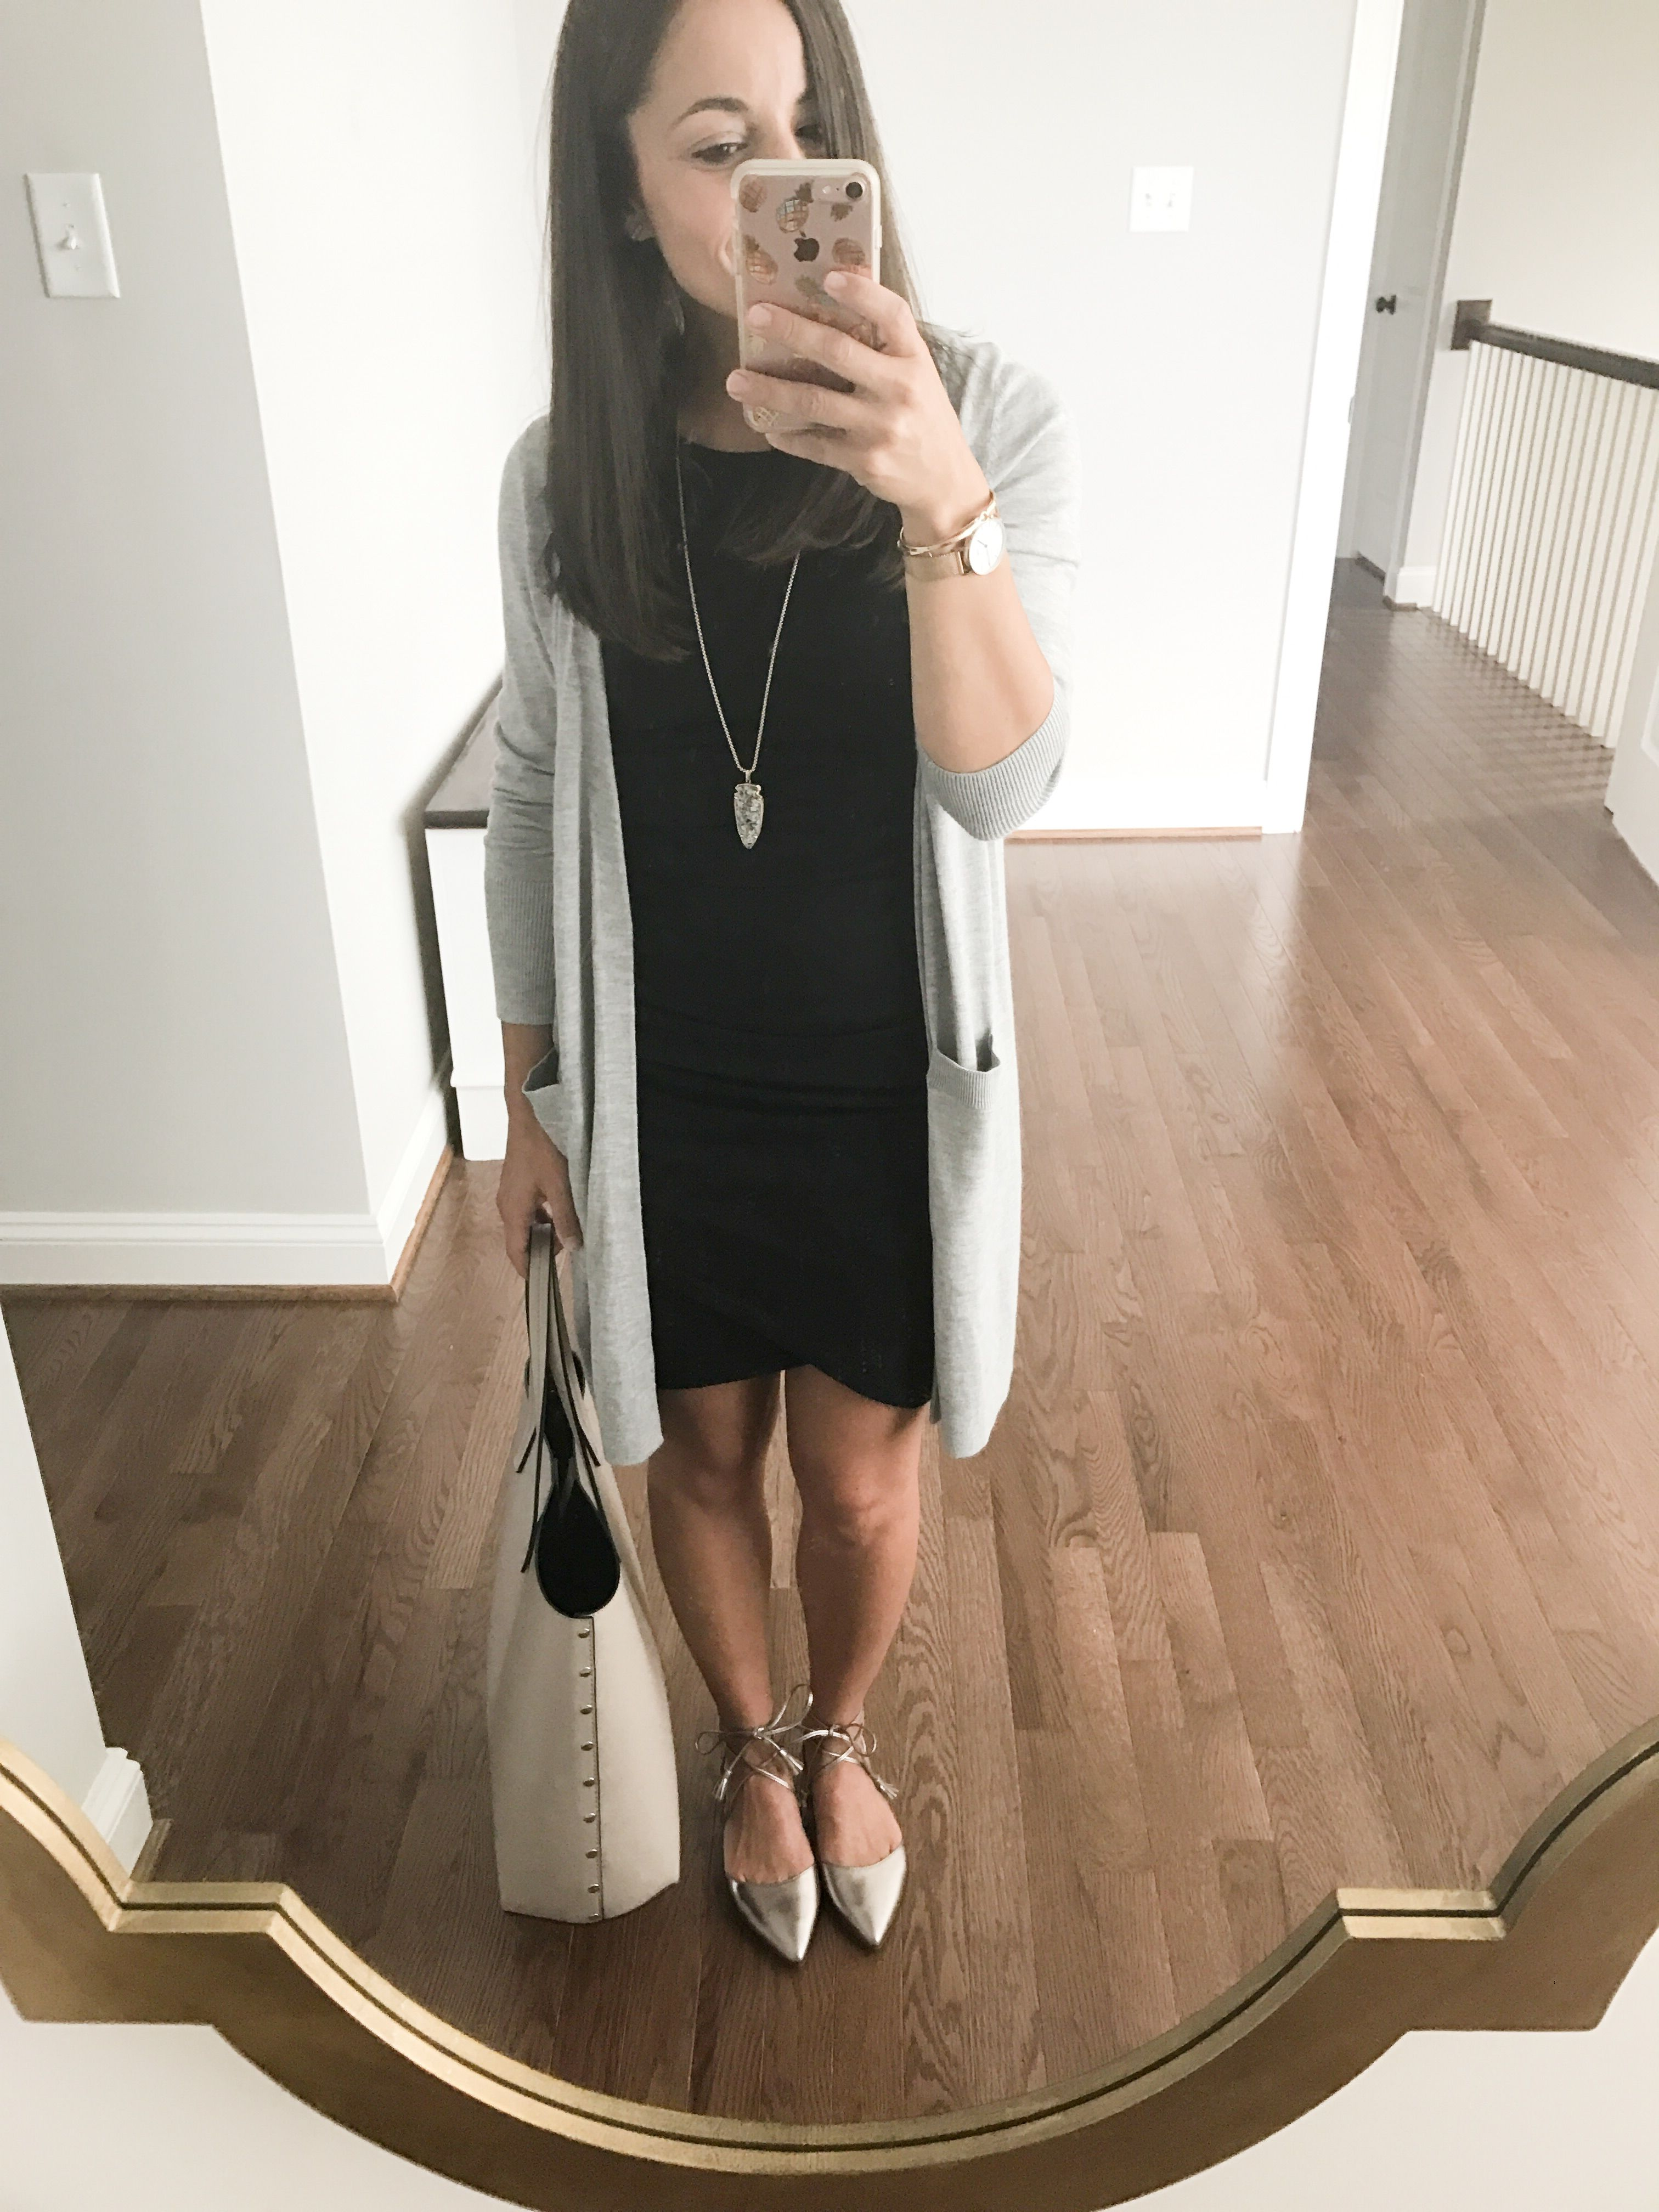 Fall Outfit Idea Black Dress With A Long Cardigan And Flats Nordstrom Oliver Ankle Wrap Flats Halo Stylish Work Outfits Business Outfits Women Work Outfit [ 4032 x 3024 Pixel ]